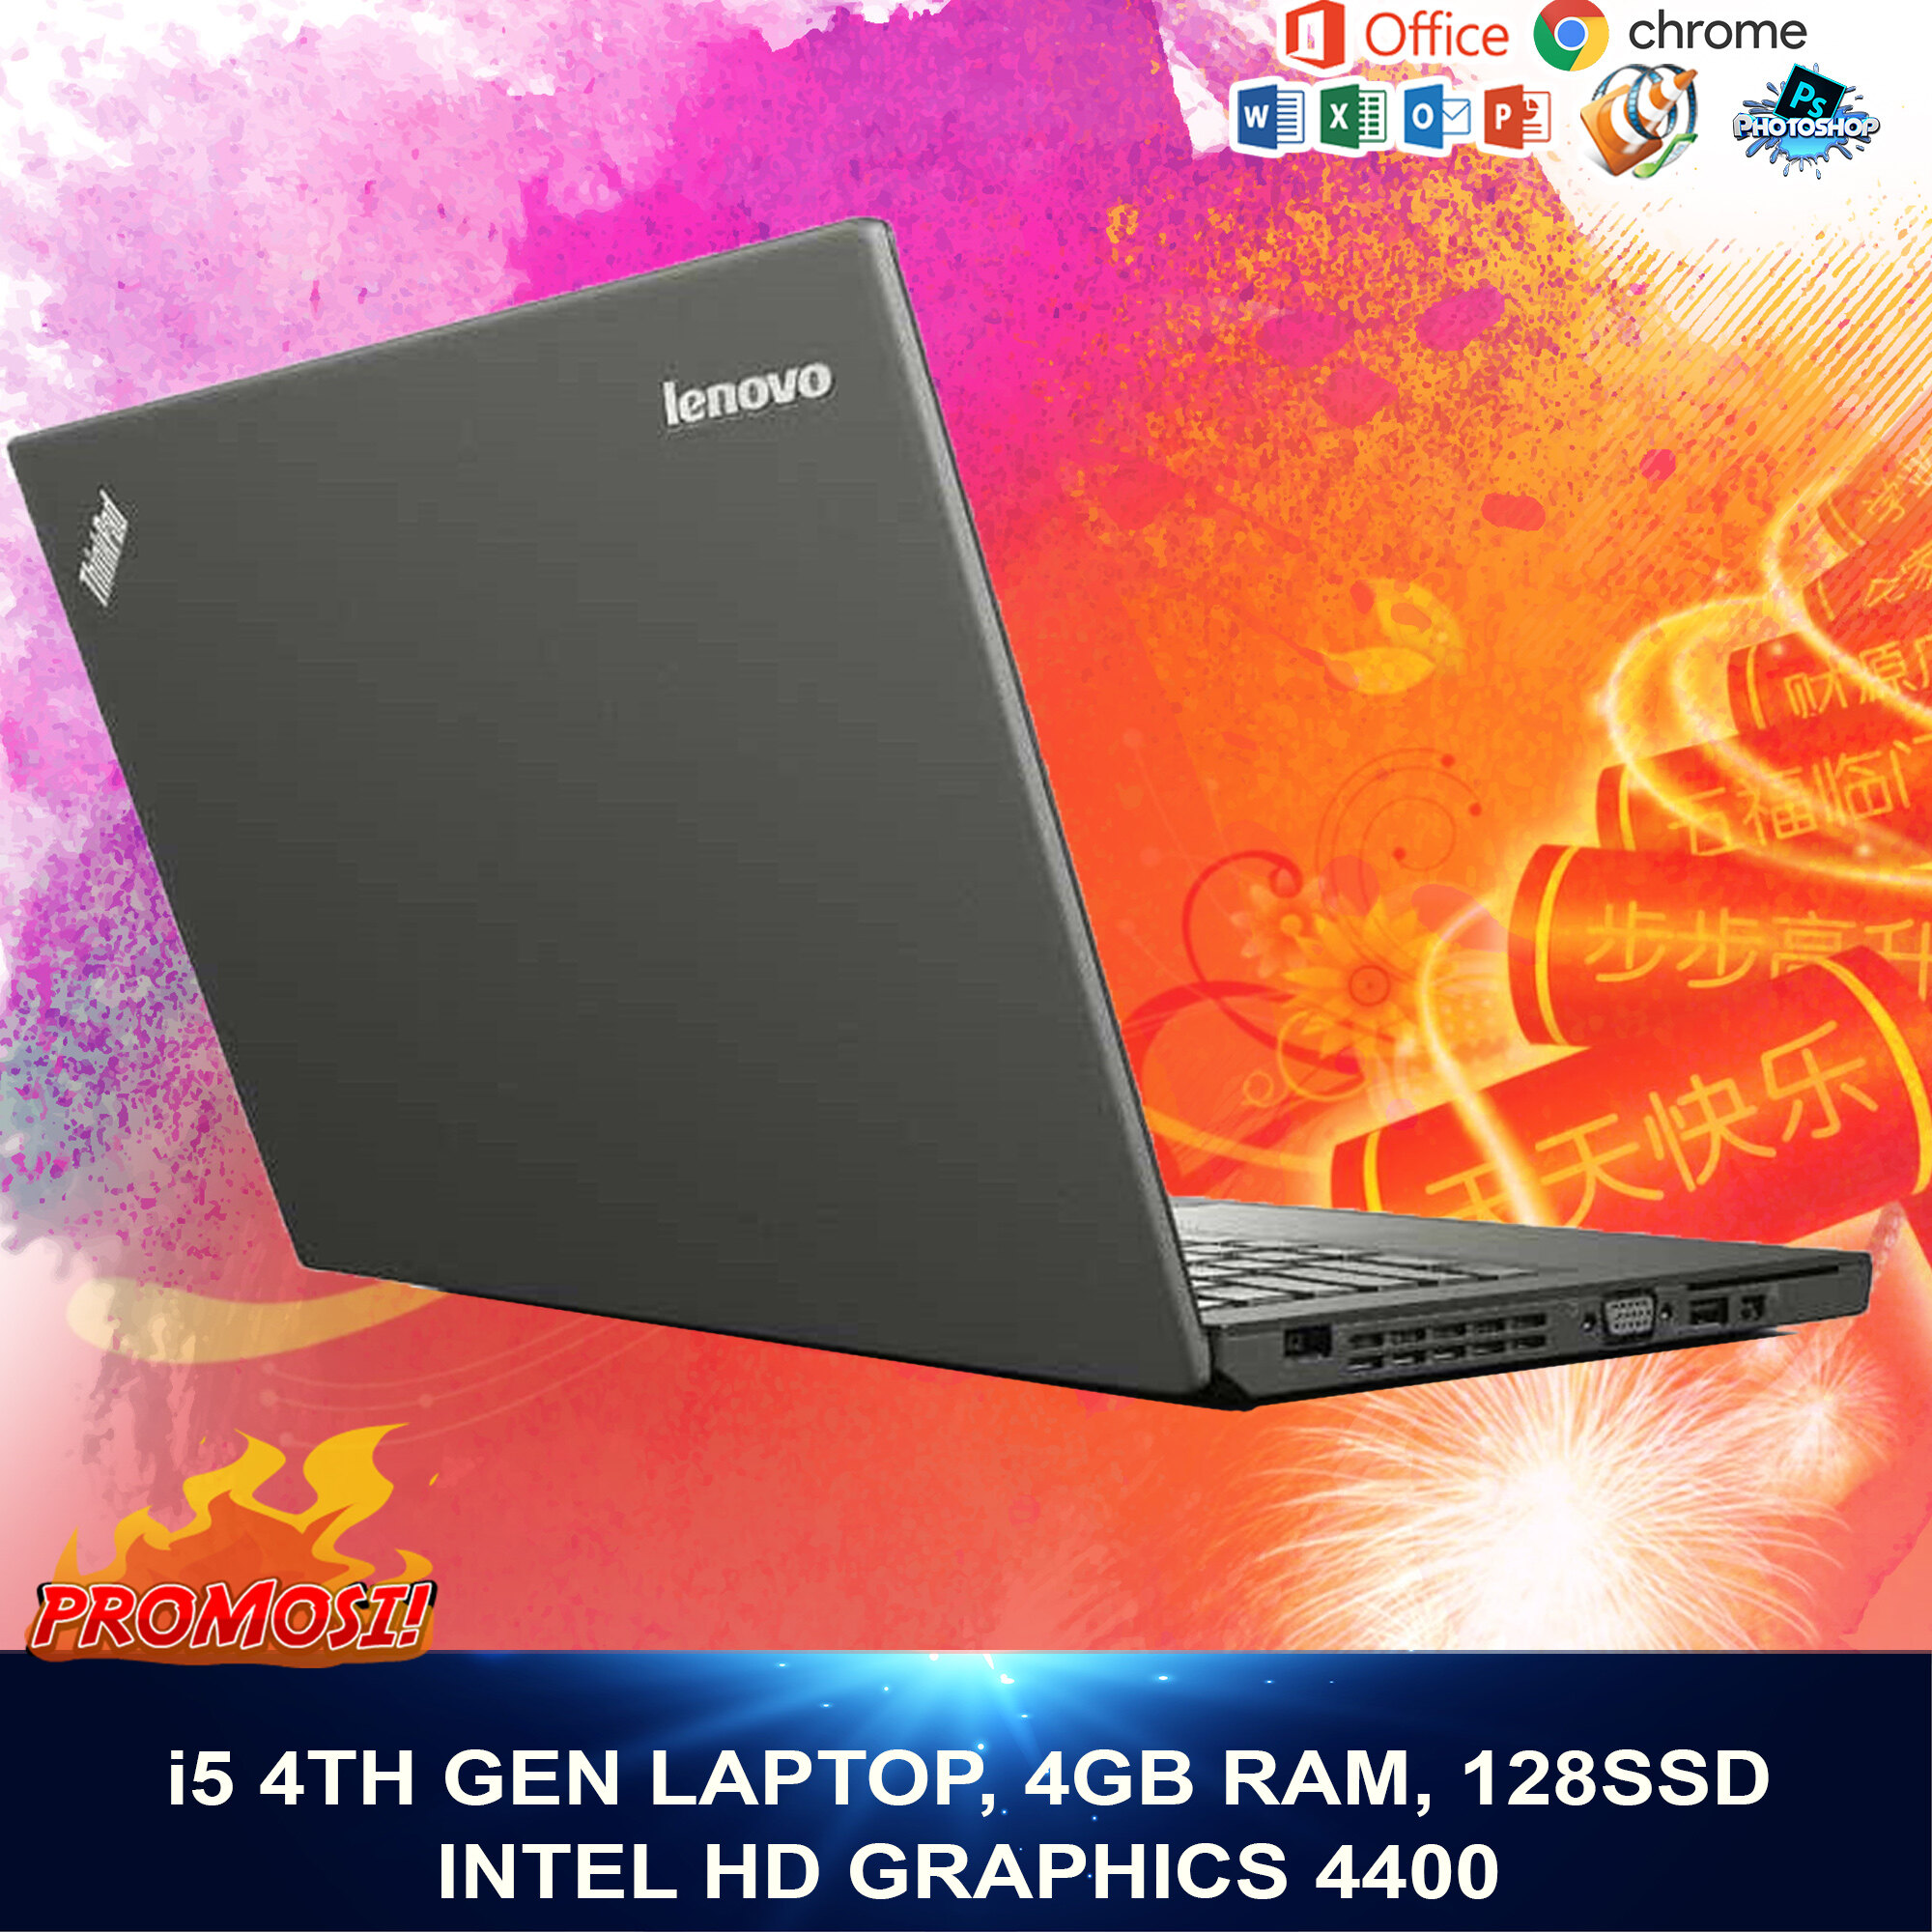 Lenovo X240 - i5 4th Gen Laptop,  4GB RAM, 128SSD, WebCam, Wifi, 3 Months Warranty + Upto 1 Year Extended Warranty Free gifts Malaysia